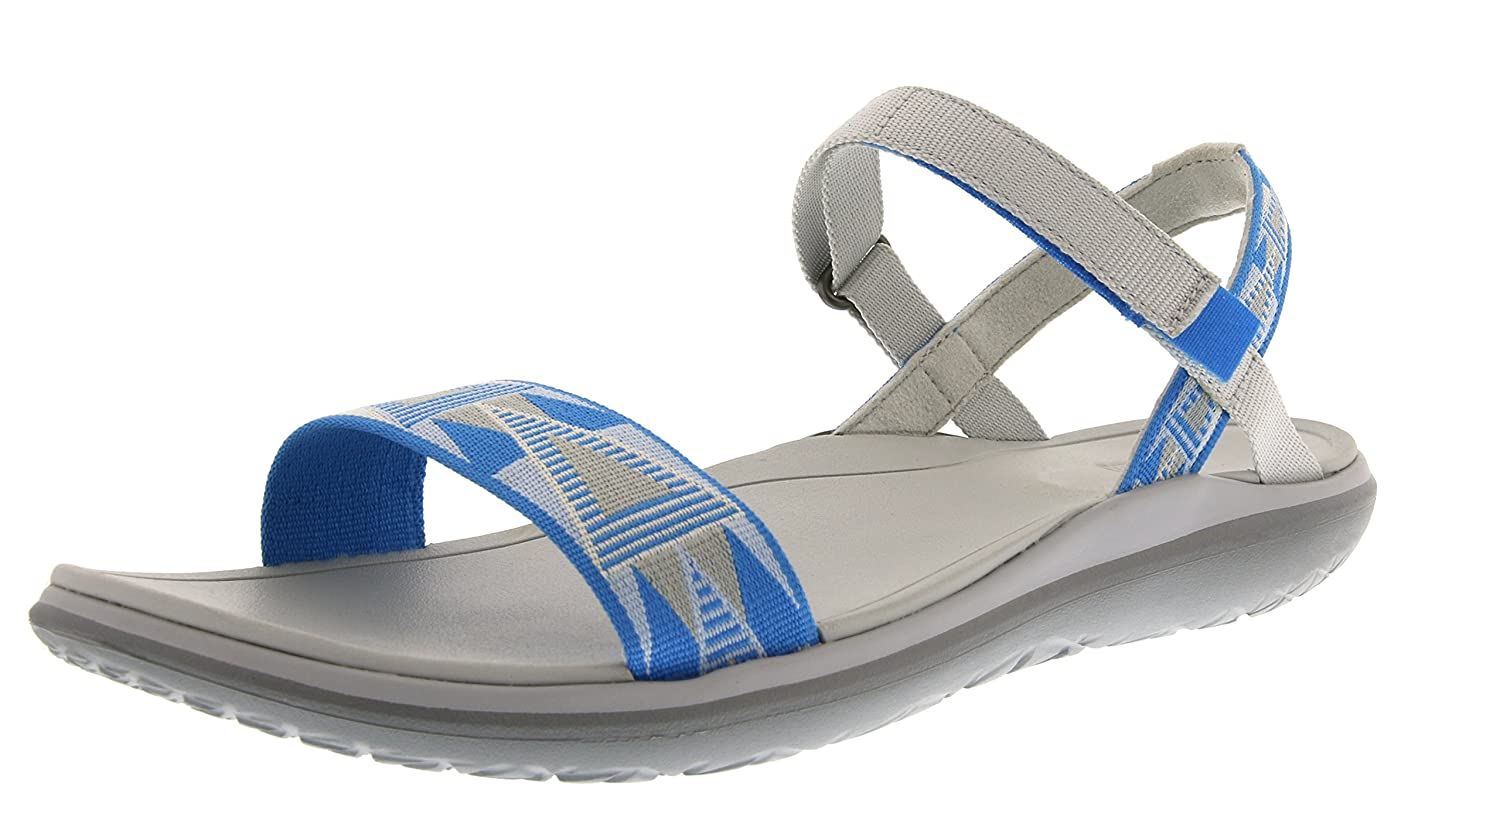 Teva Women's Terra-Float Nova Sandal B00ZFLJVQI 9 B(M) US|Grey